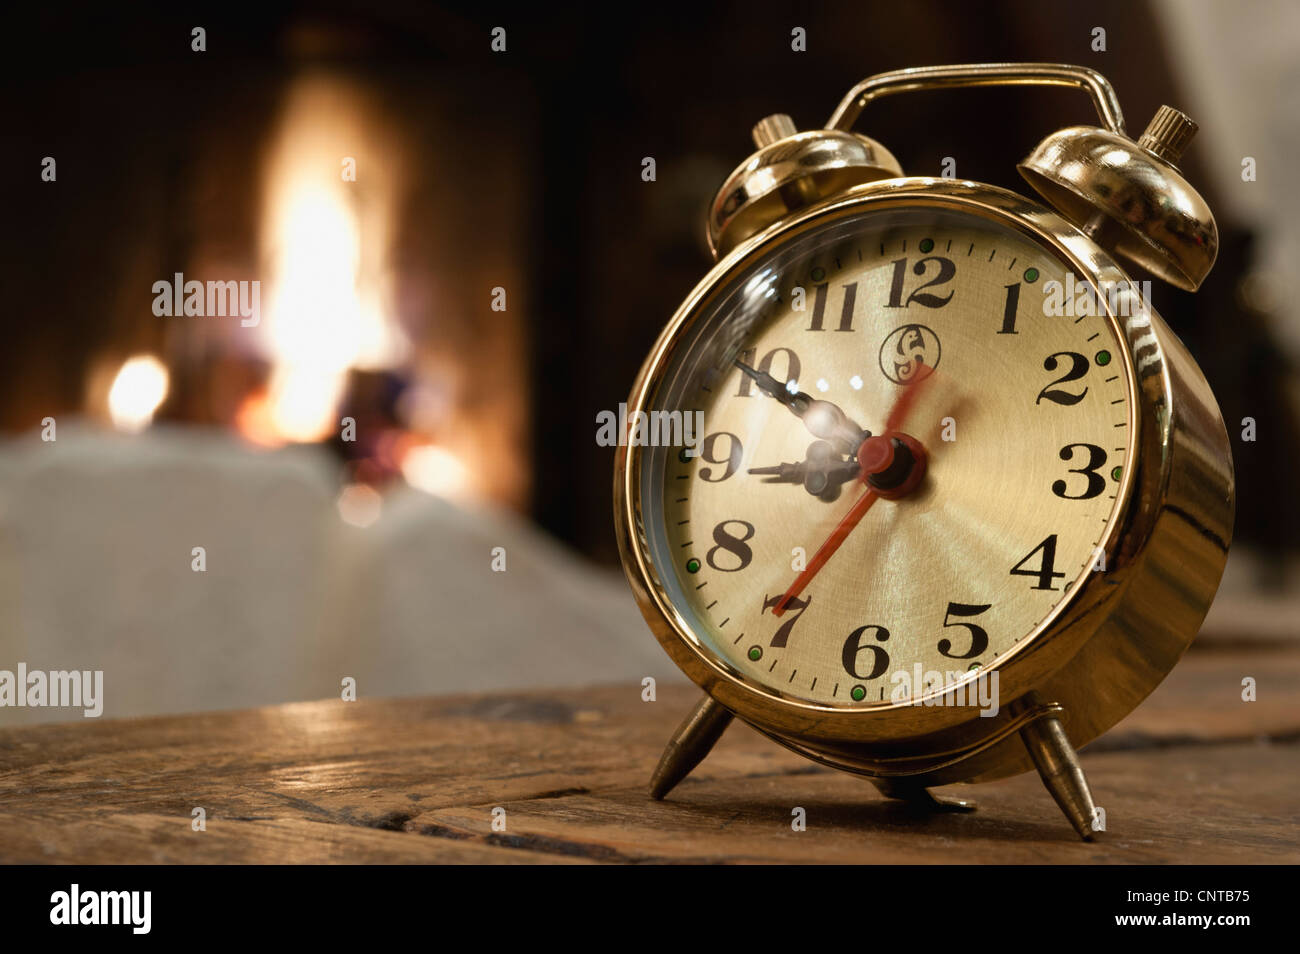 Alarm clock - Stock Image